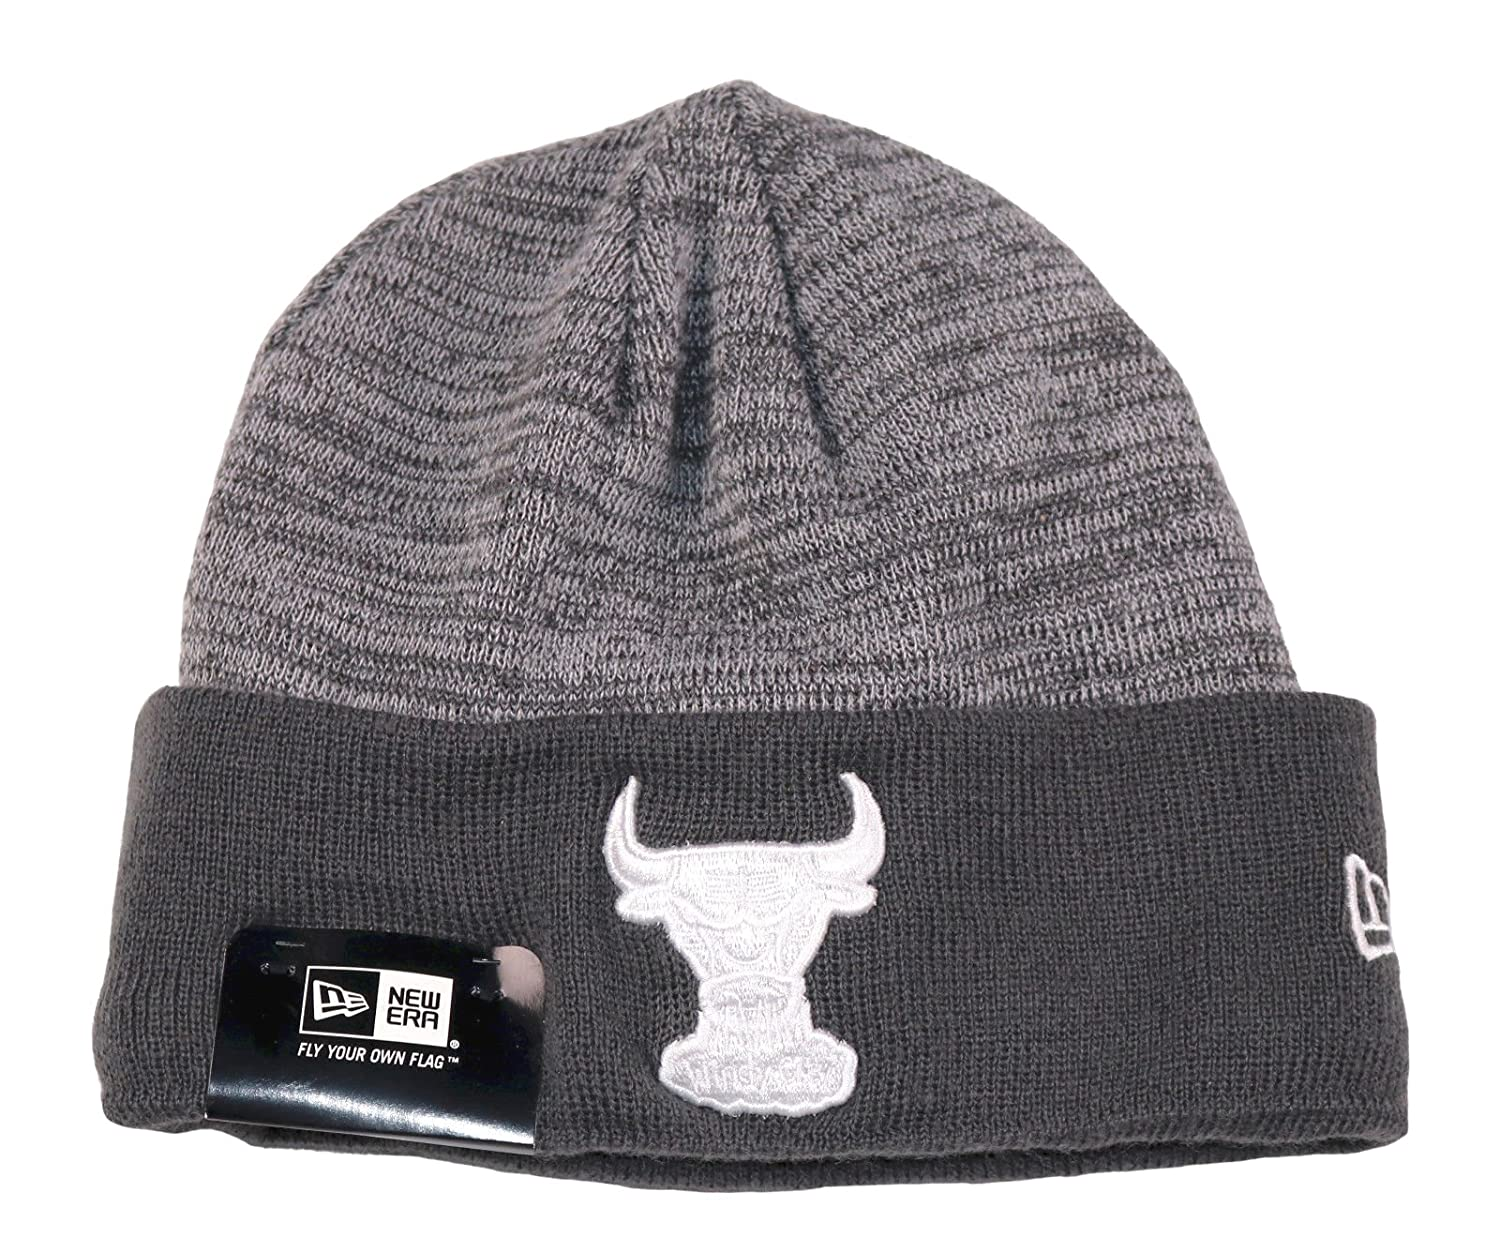 New Era Men s Chicago Bulls Knit Logo Beanie Grey White at Amazon Men s  Clothing store  c54c79627ff